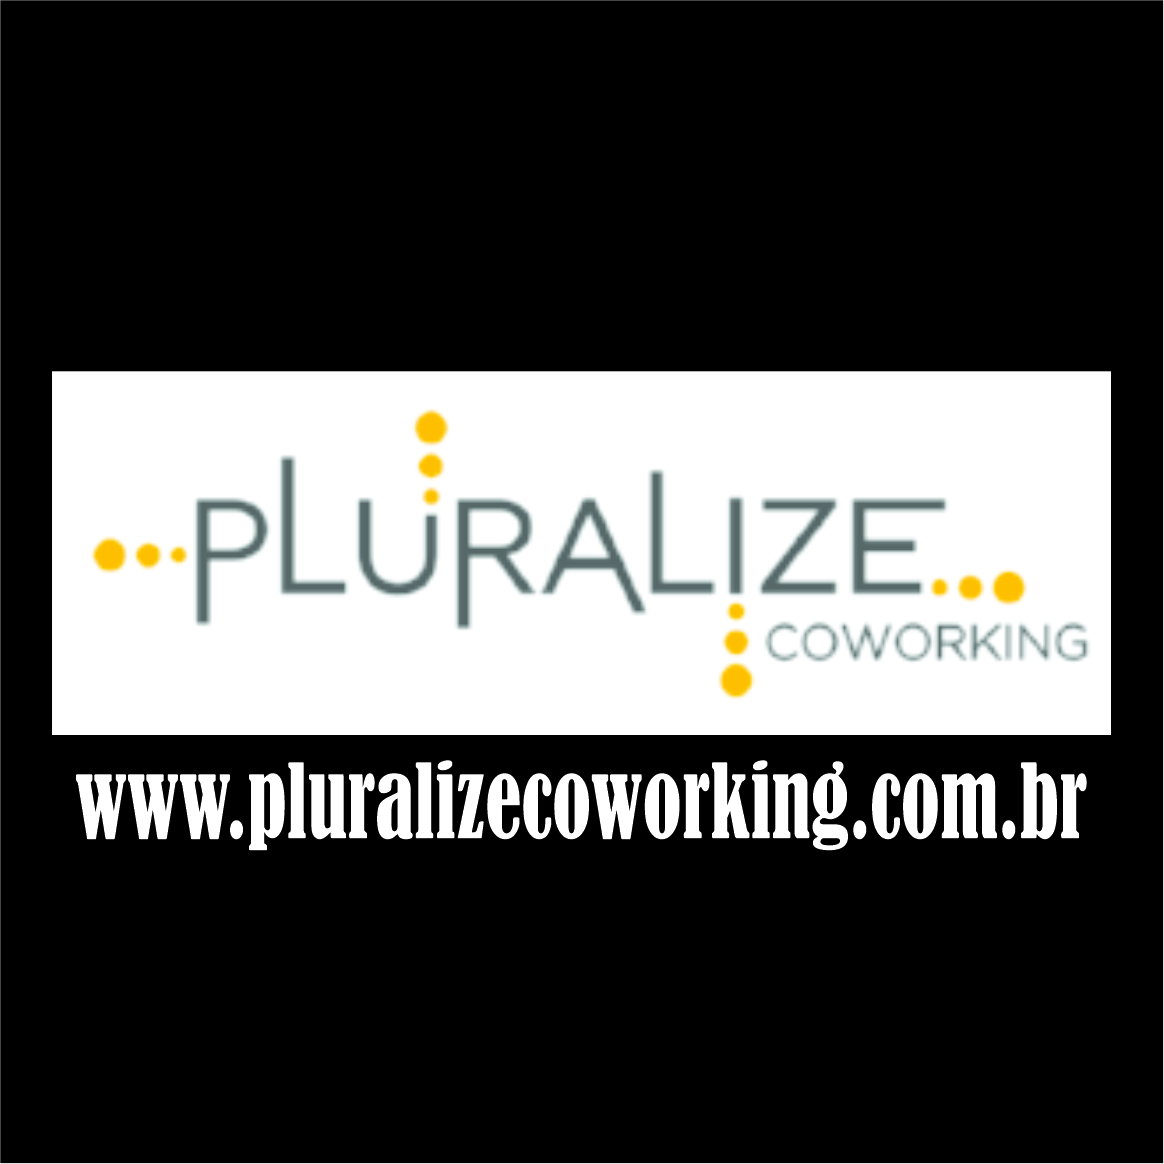 PLURALIZE COWORKING